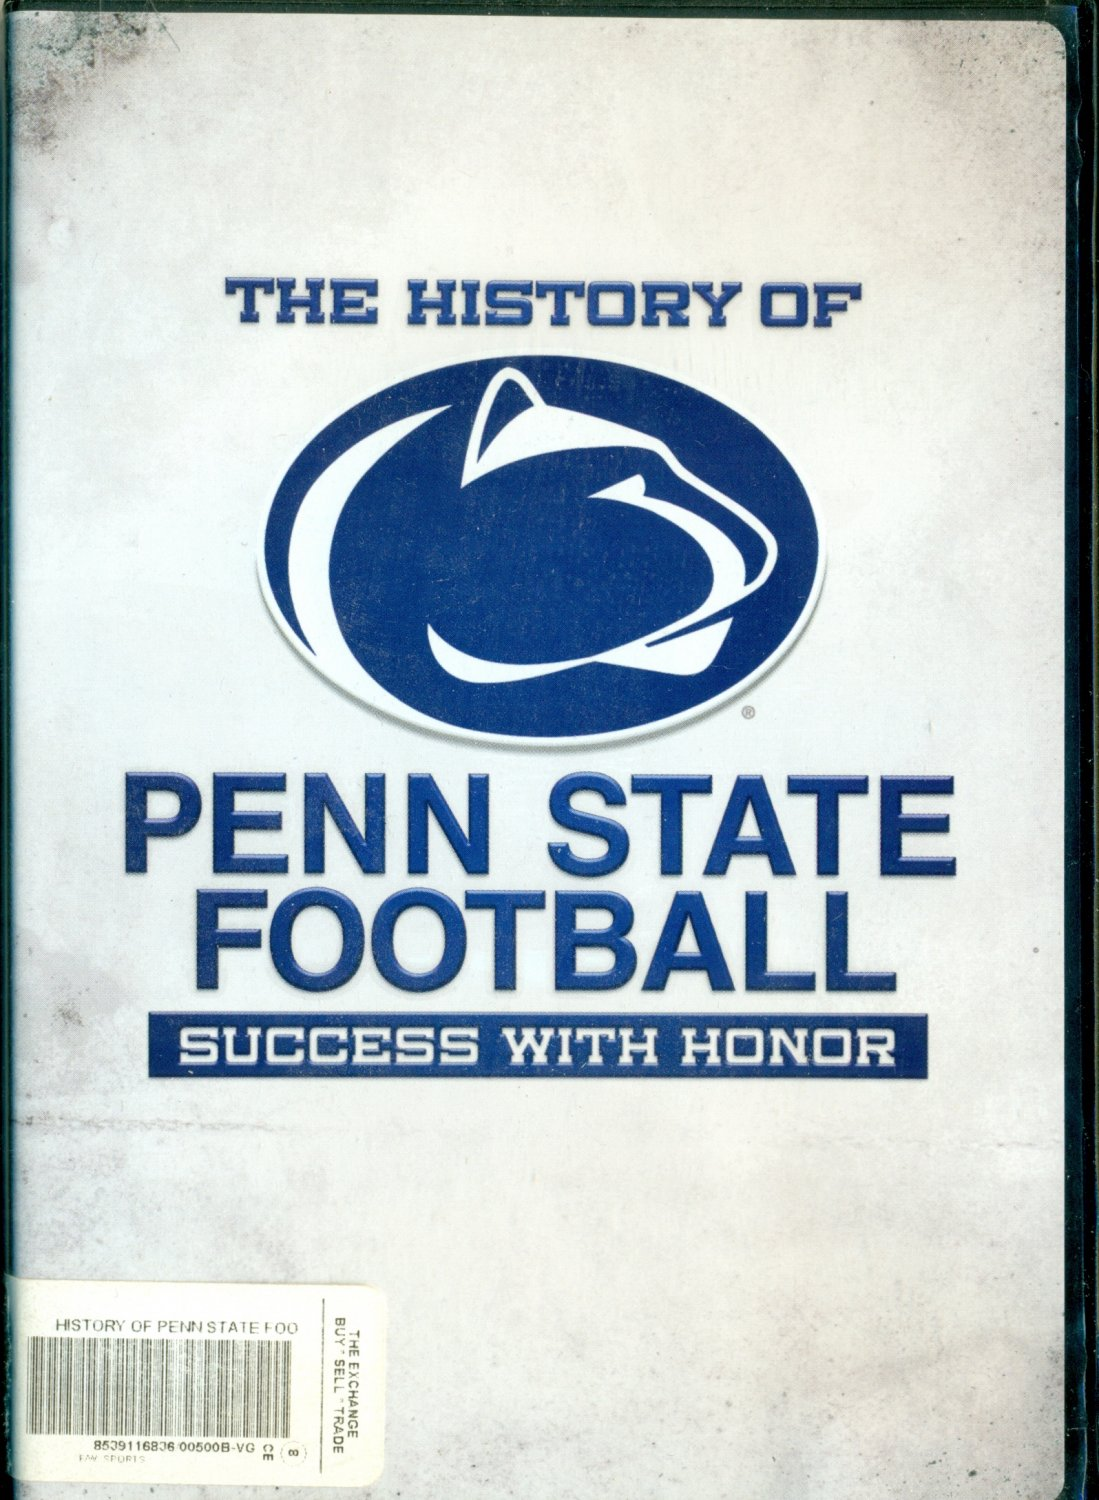 Penn State success with honor aka bullshit